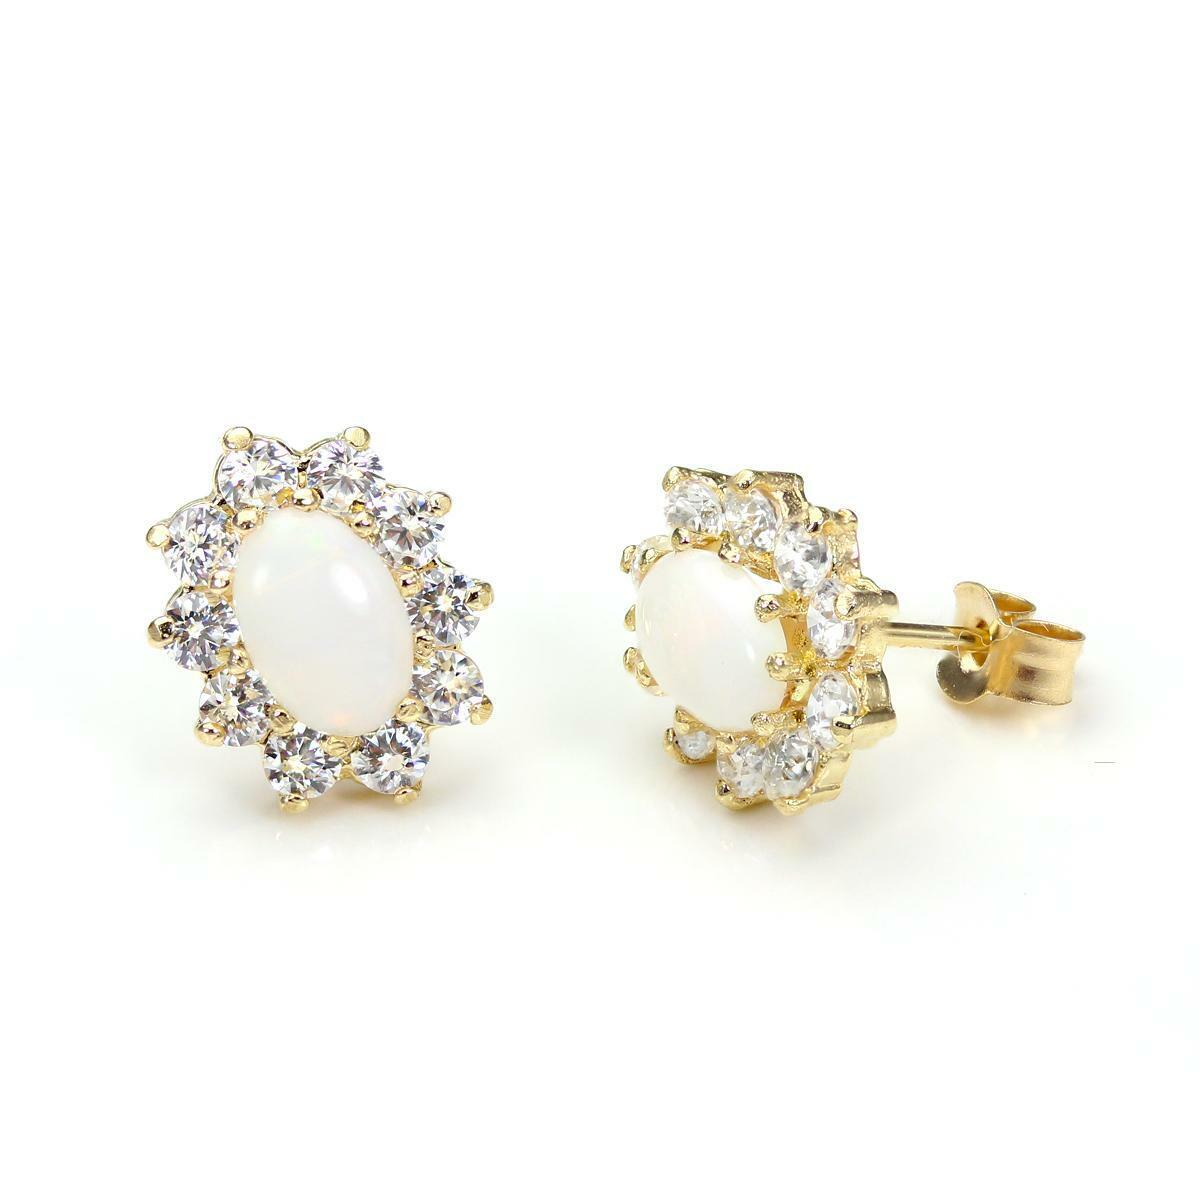 9ct gold & Opal Set Oval Stud Earrings with CZ Crystals